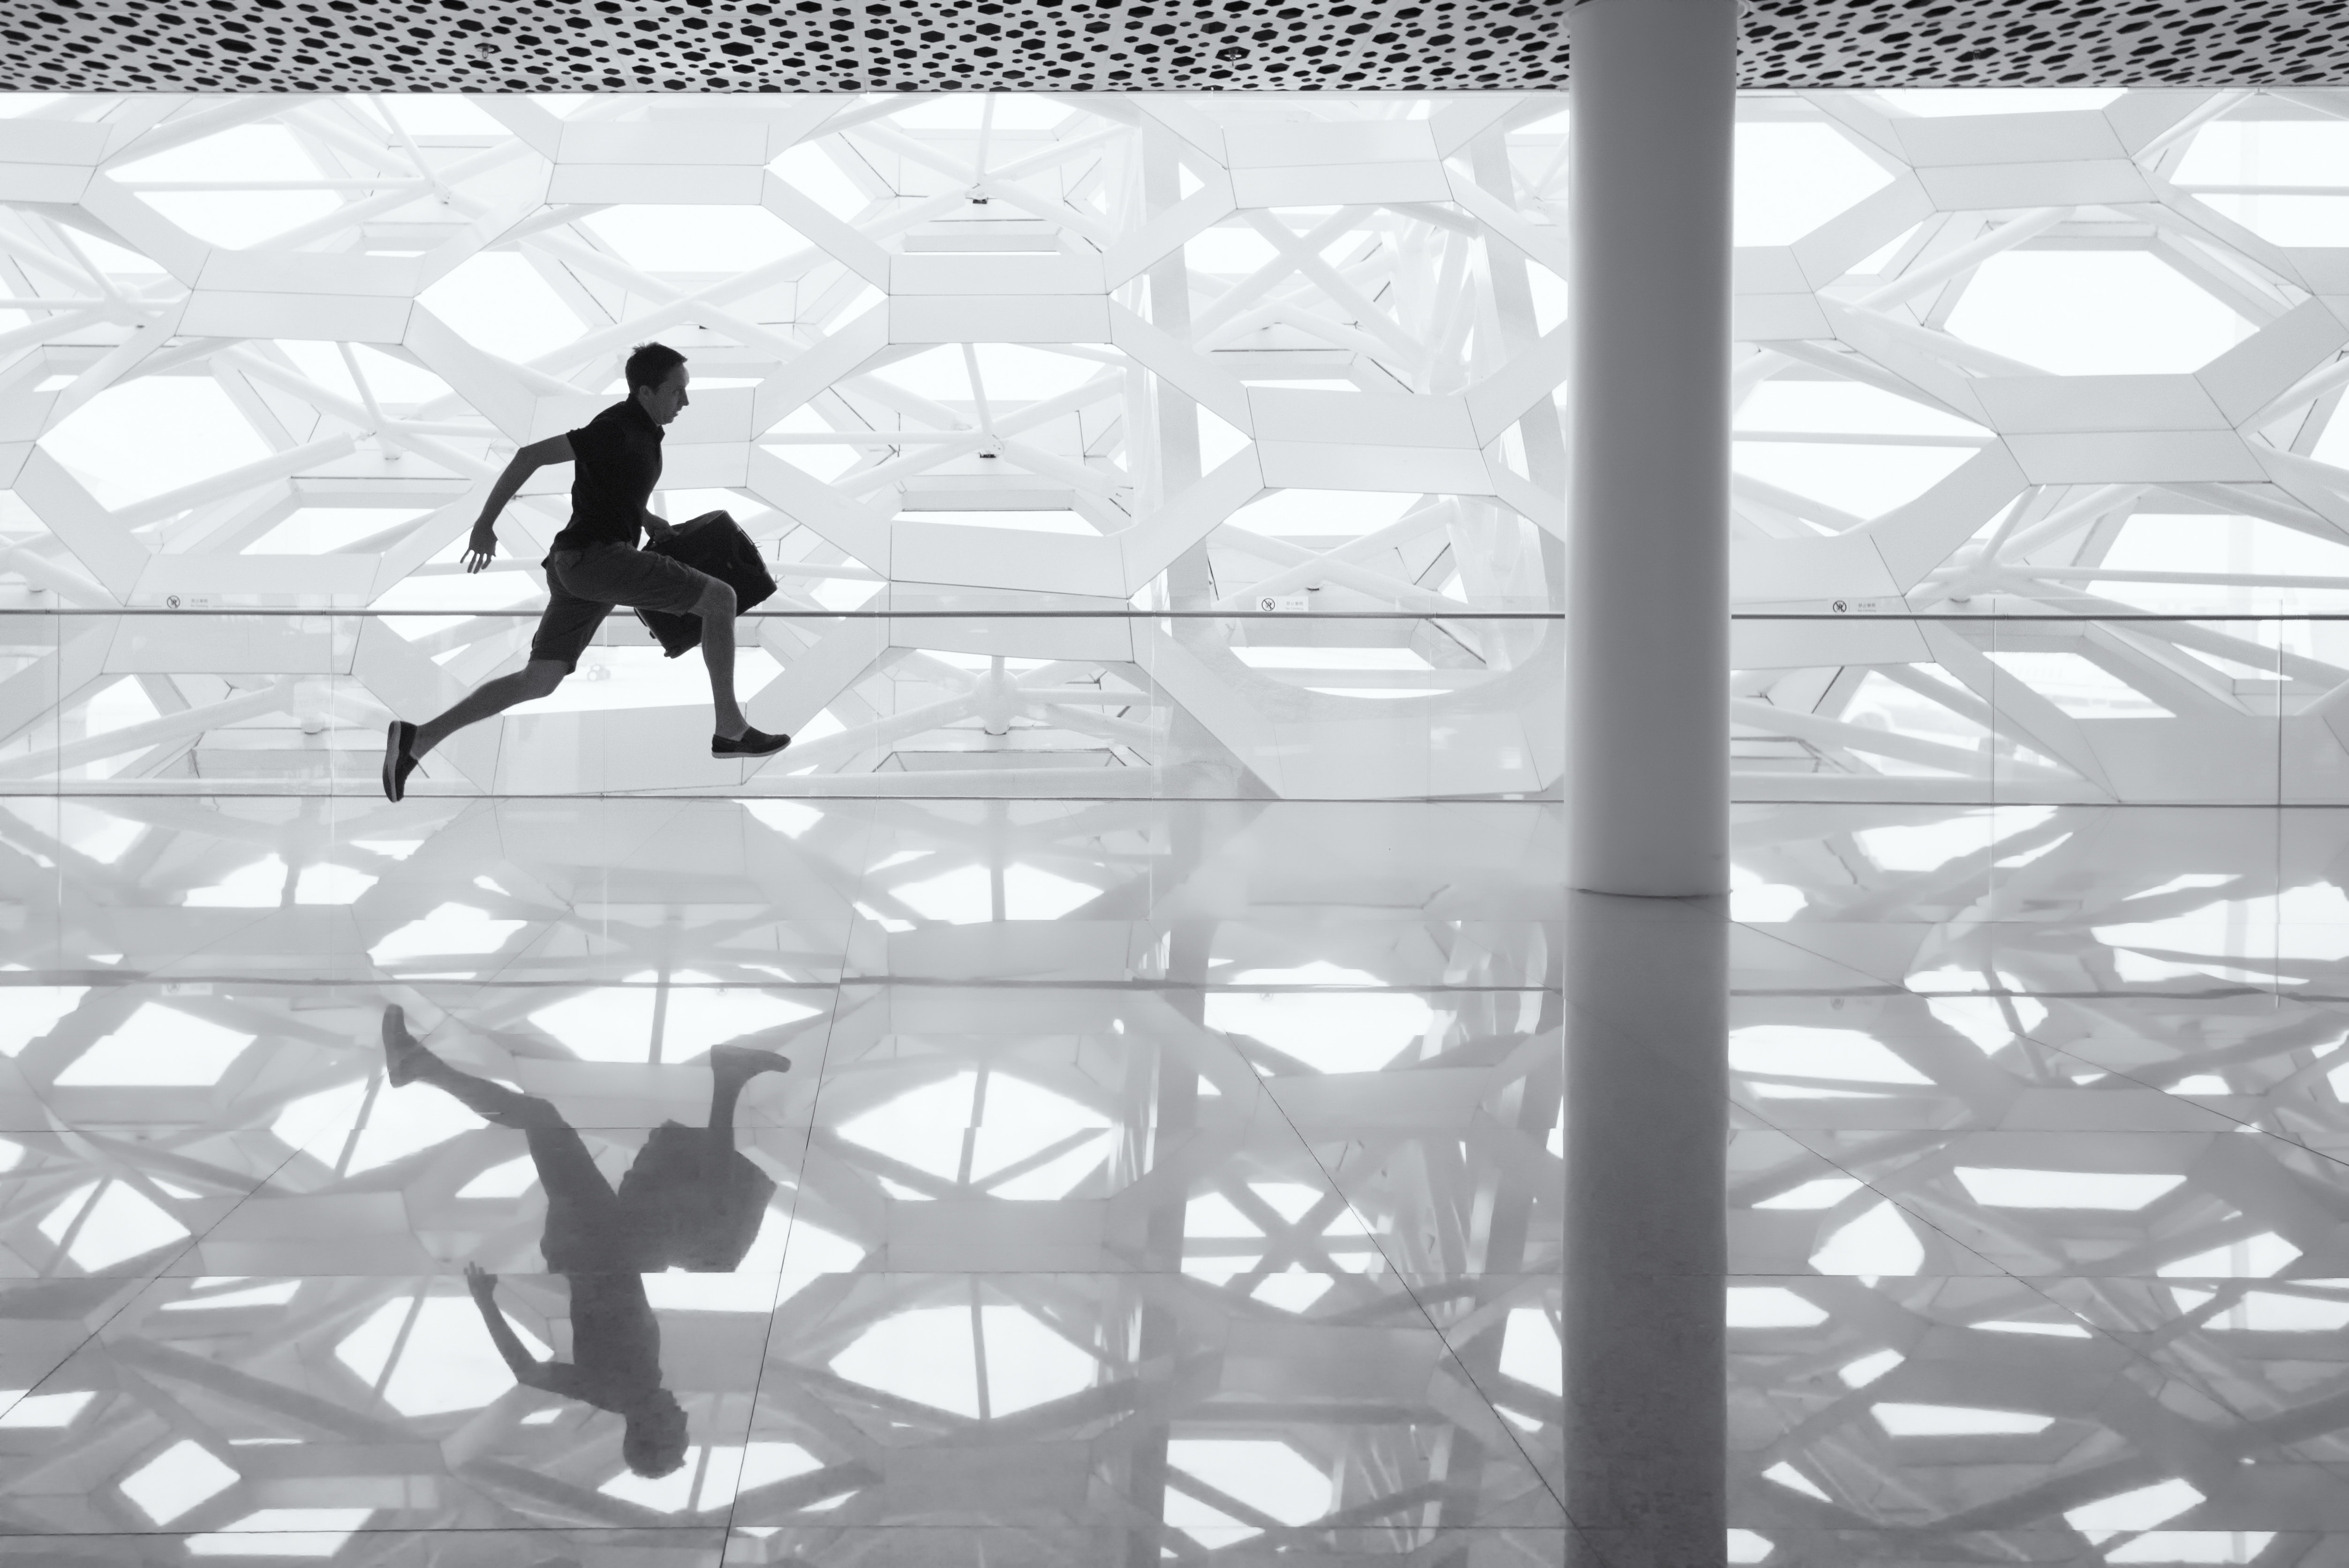 Man running through an airport — photo by Andy Beales on Unsplash